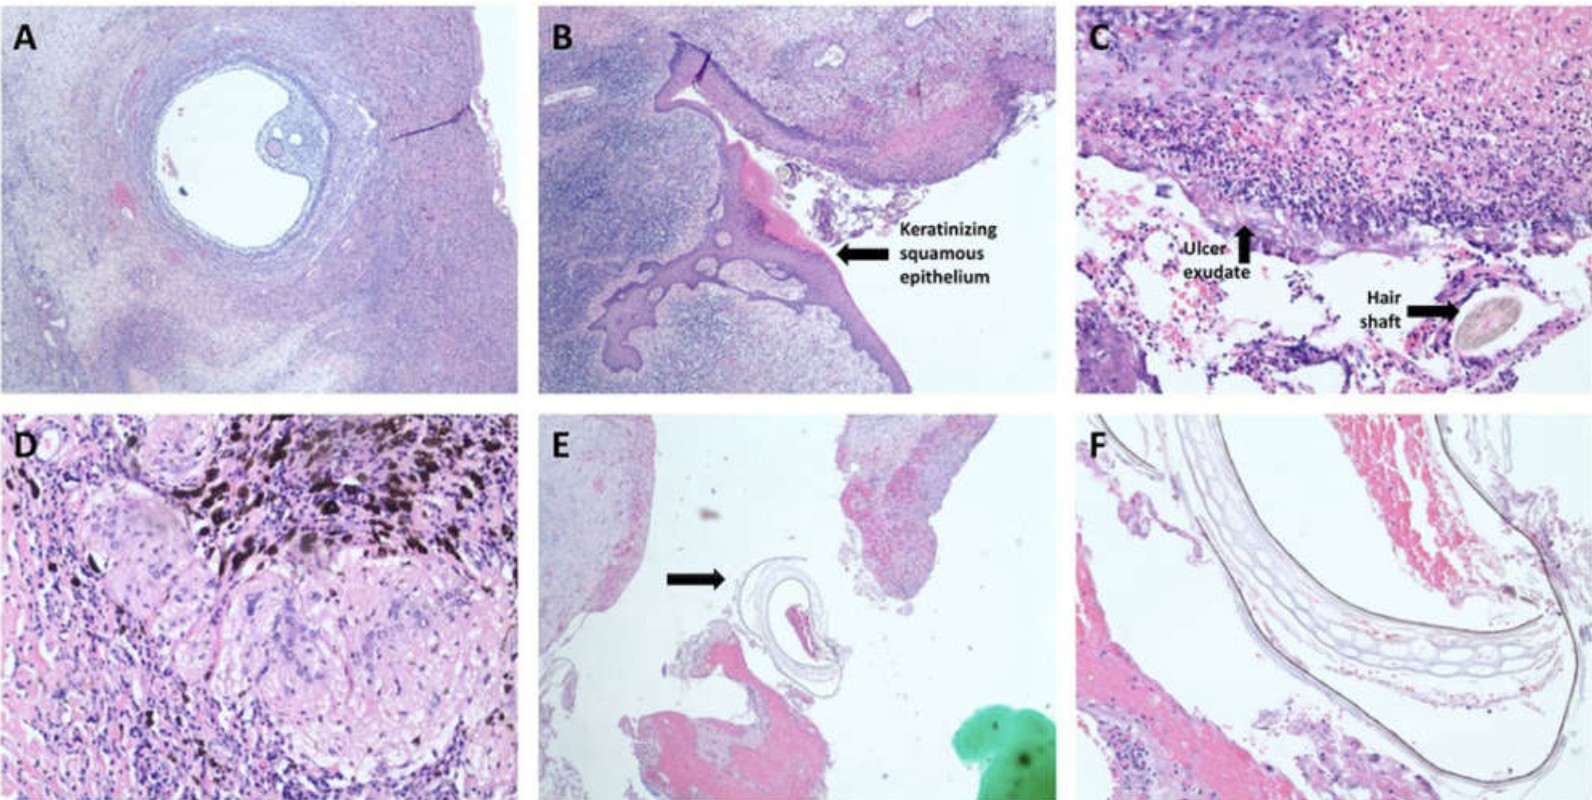 Cisto (Foto: Journal of Clinical and Diagnostic Research)